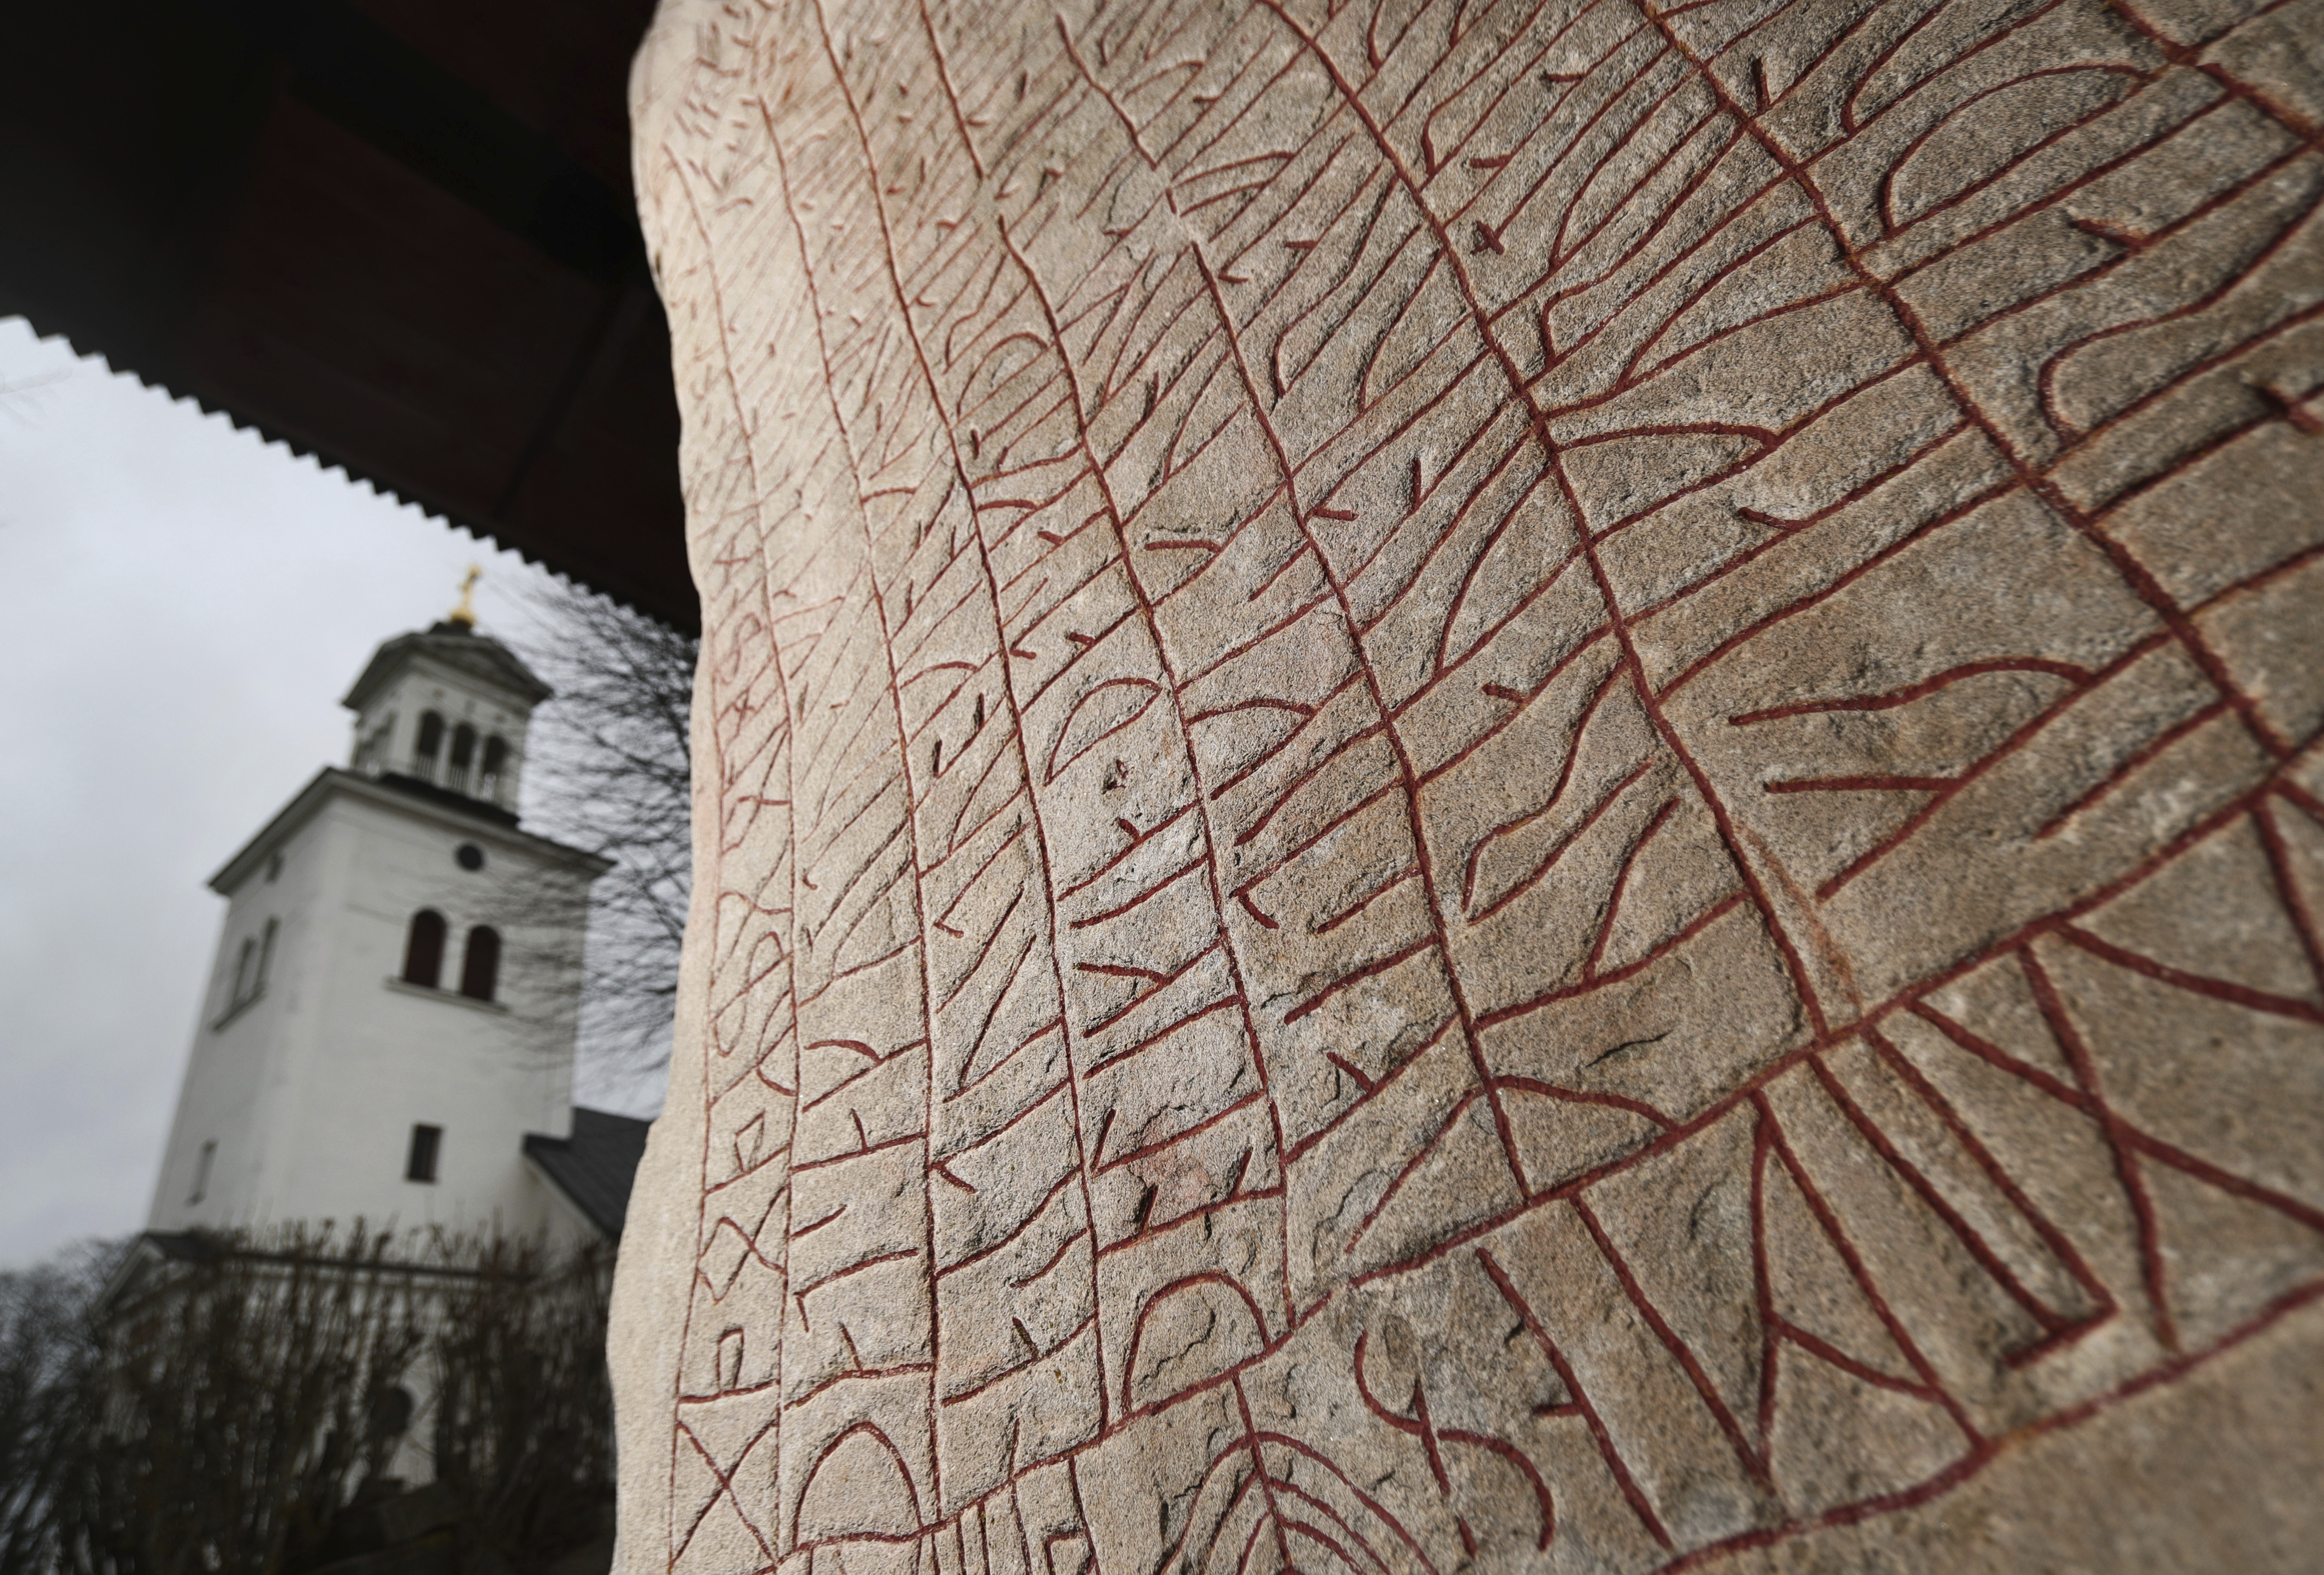 Secret Code On Viking Stone Finally Cracked After 1,200 Years Reveals 'End Of The World' Prophecy